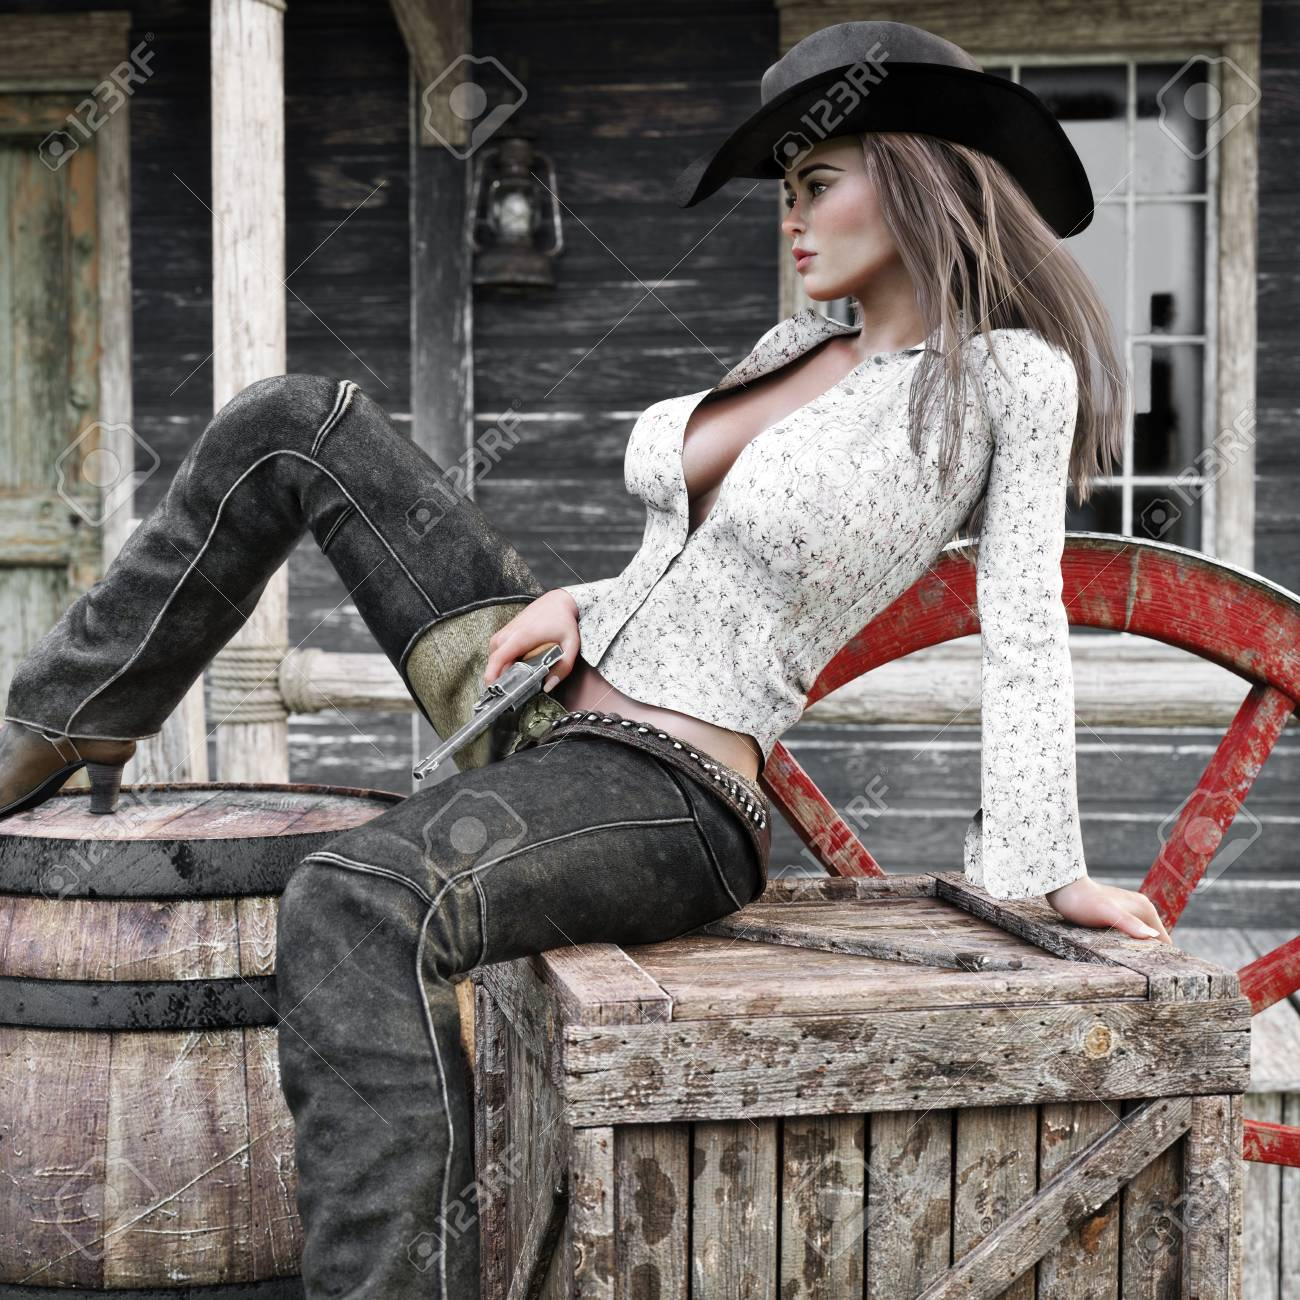 Sexy classy female cowgirl gunslinger relaxing in town with her revolver pistol at the ready. 3d rendering - 114976151